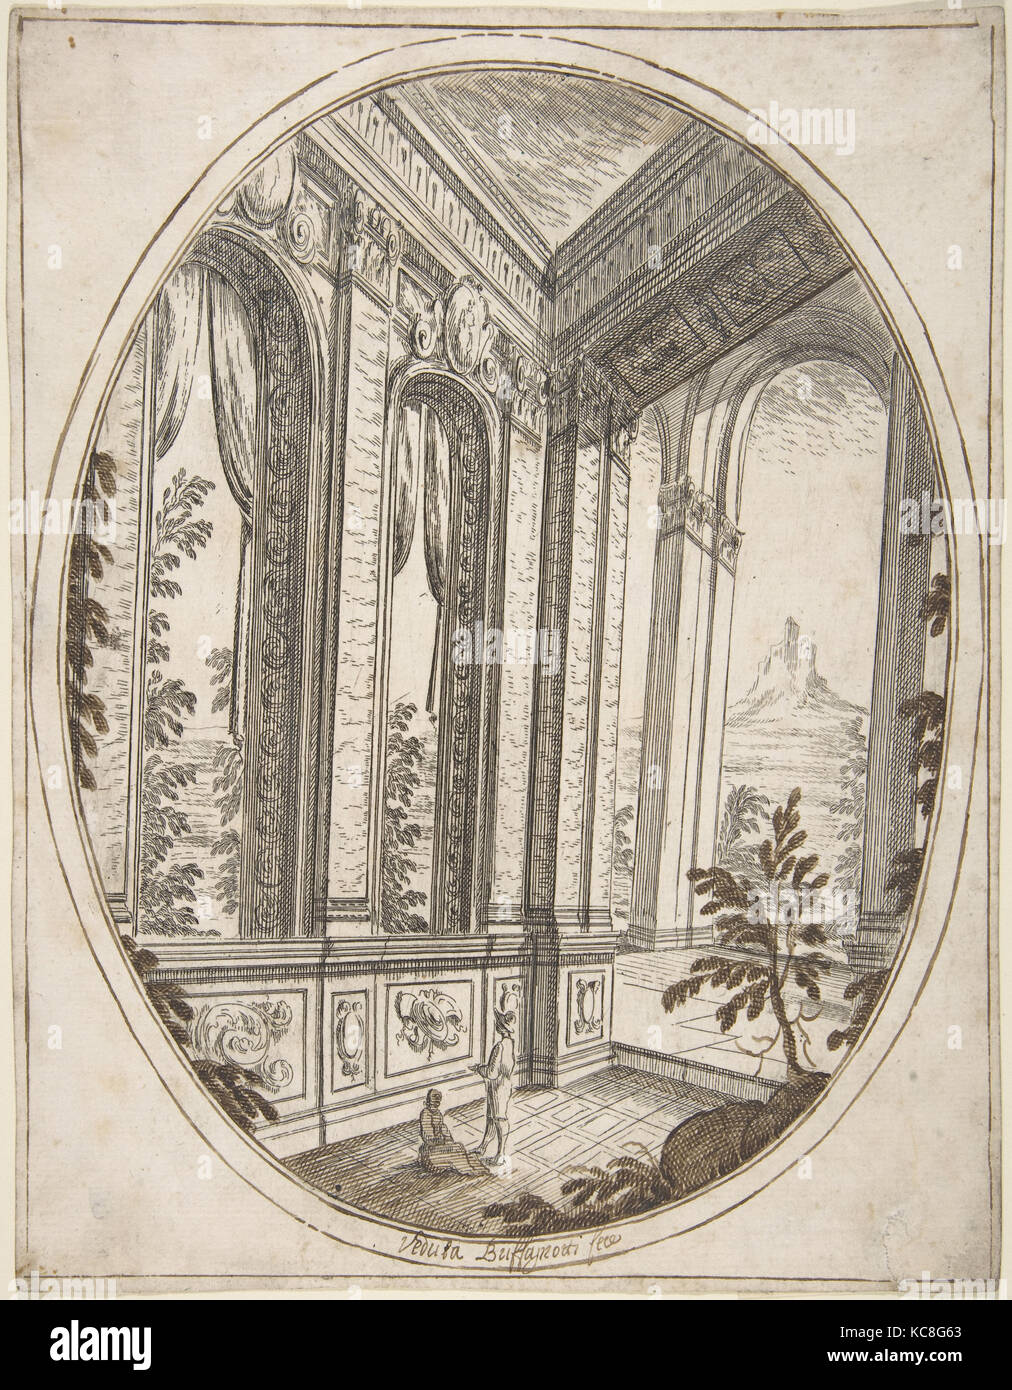 Vertical Oval Vignette of A Palace Interior with Two Figures Admiring Decoration; a Craggy Mountain Seen Through a Window